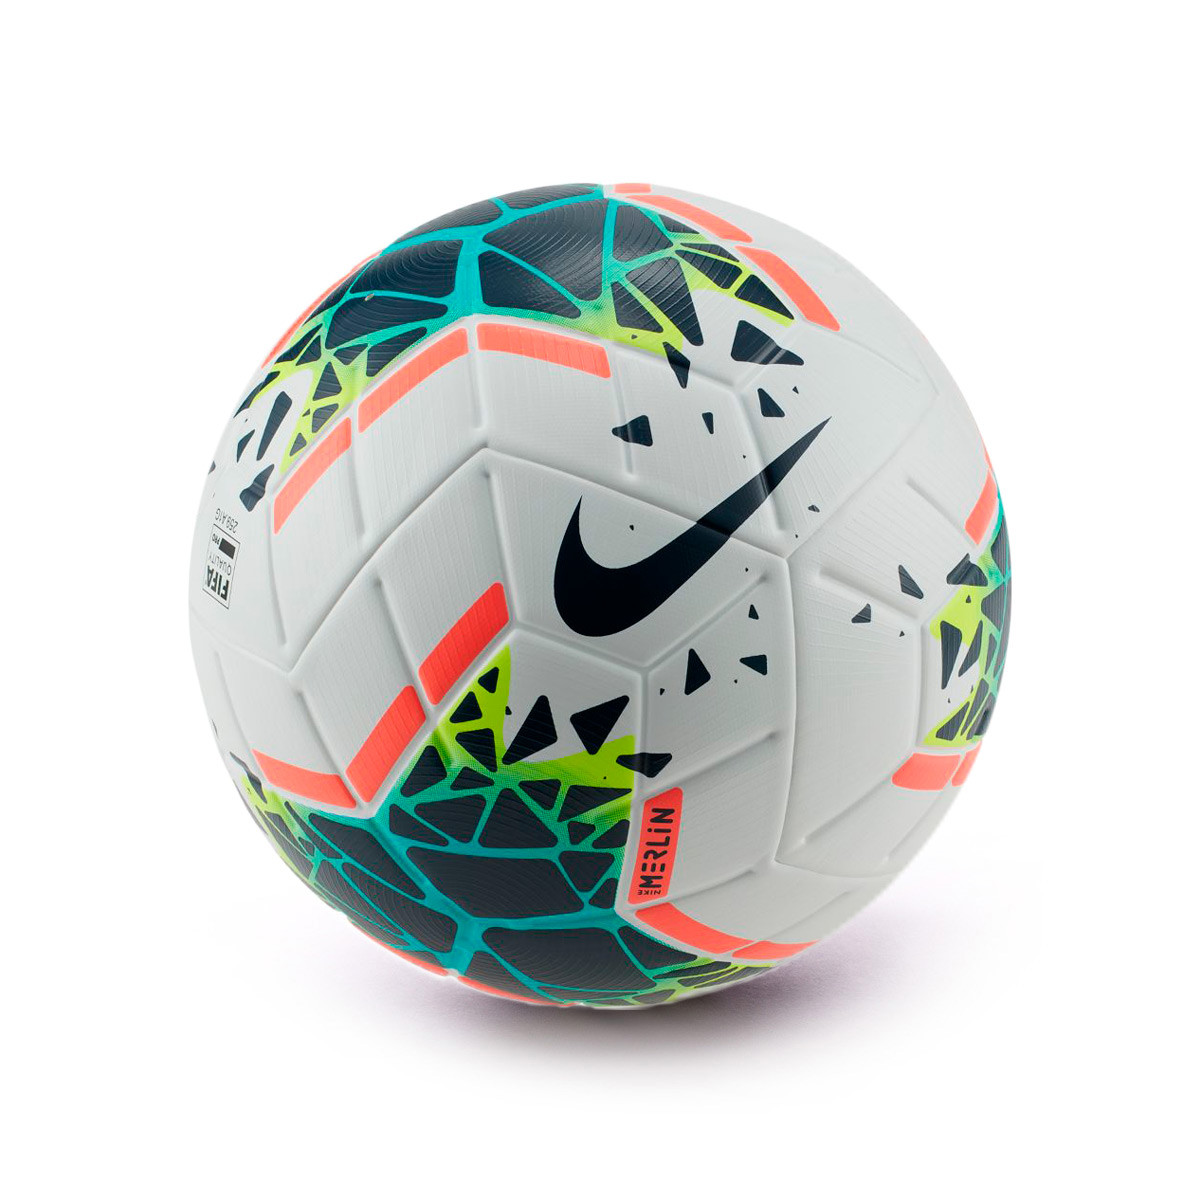 Balón Merlin 2019-2020 White-Obsidian-Blue fury